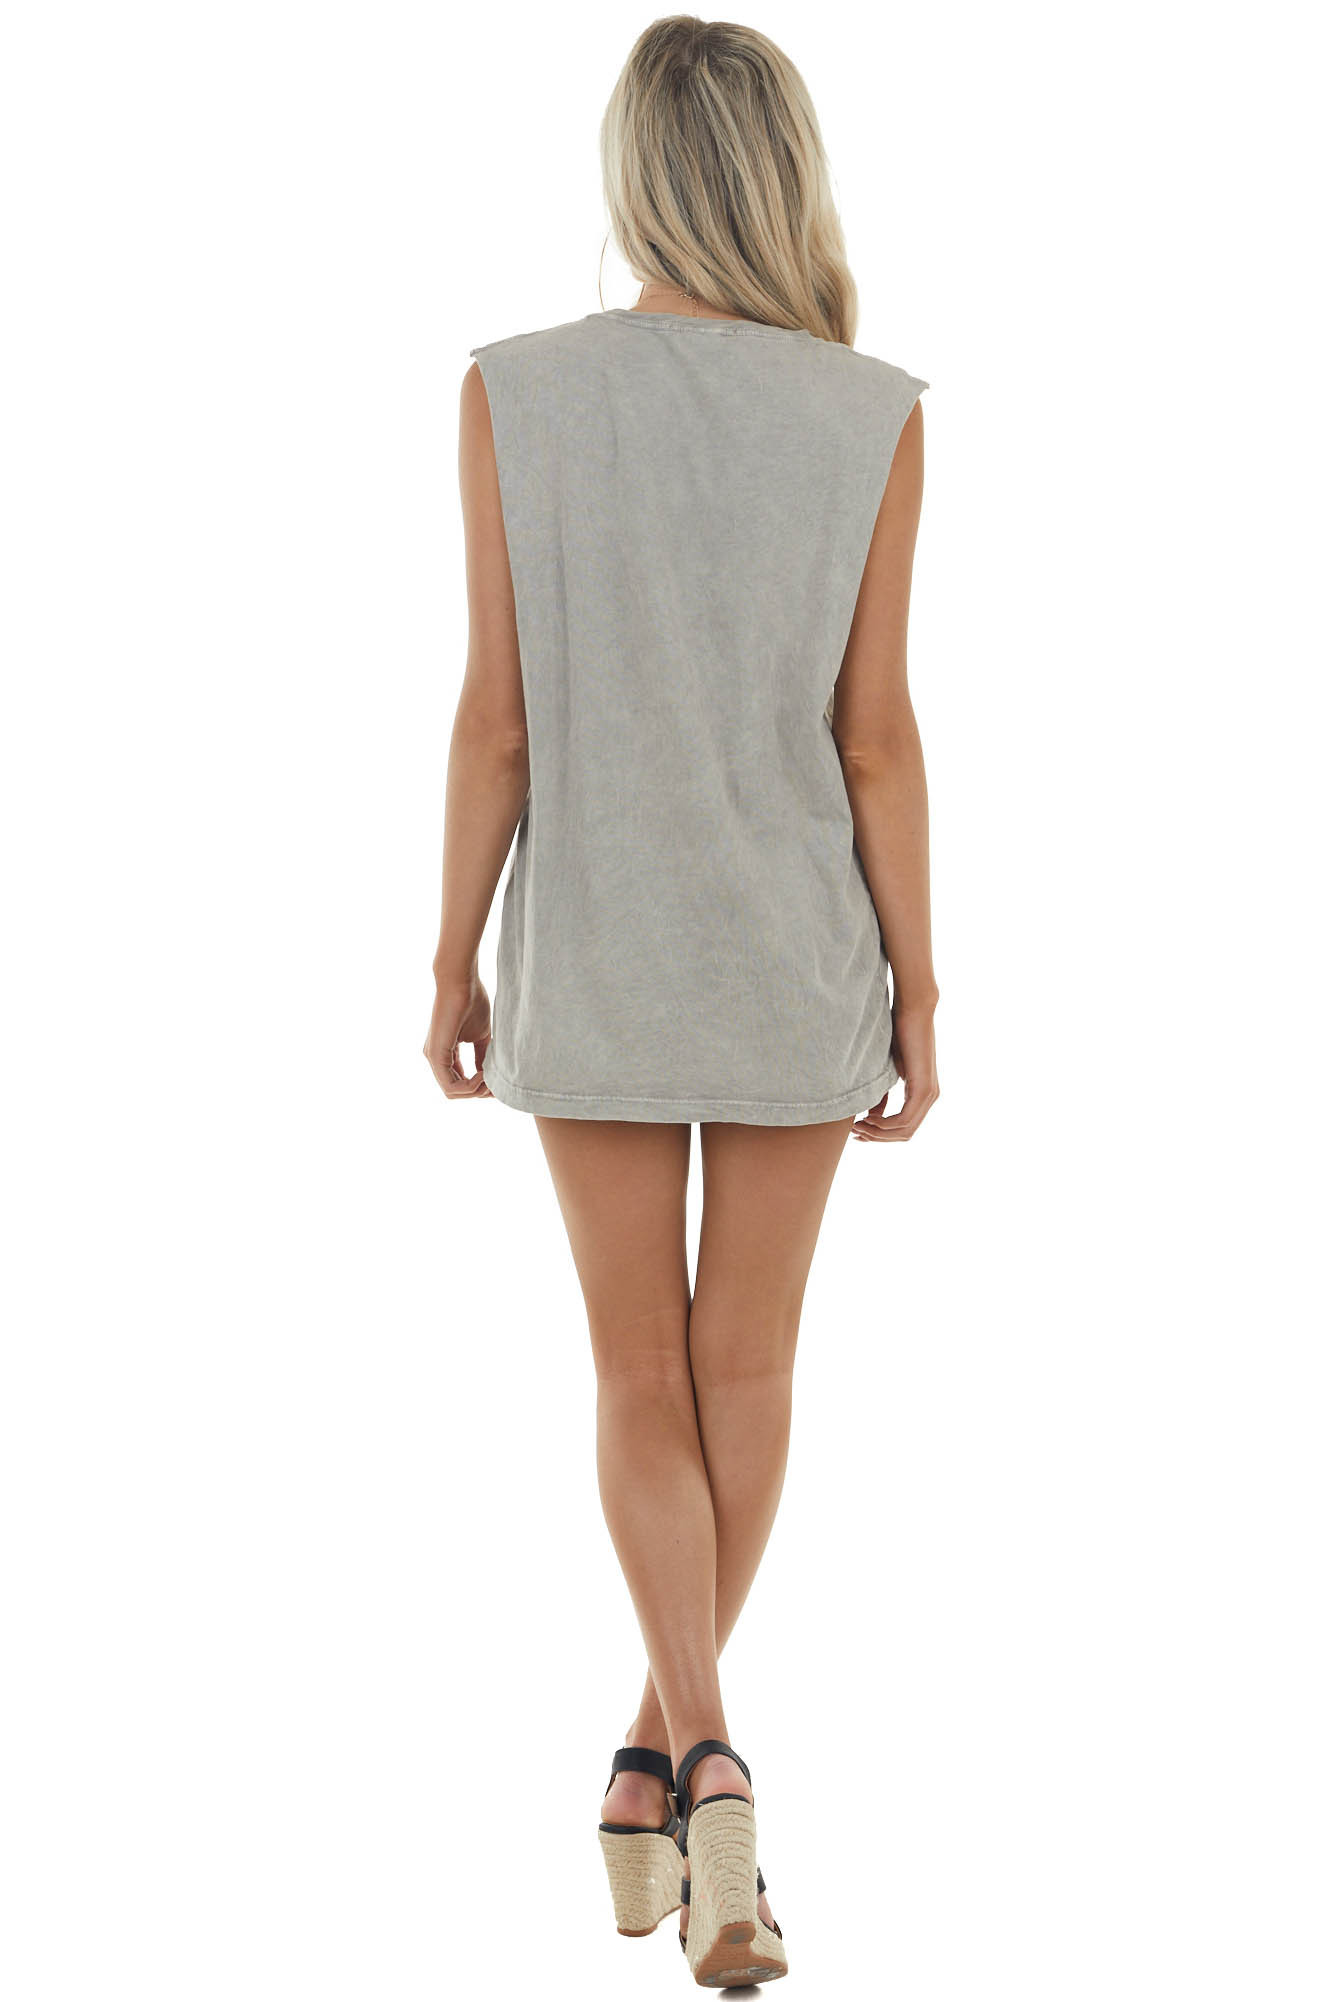 Ash Grey Mineral Wash Raw Muscle Knit Tee with Ribbed Neck